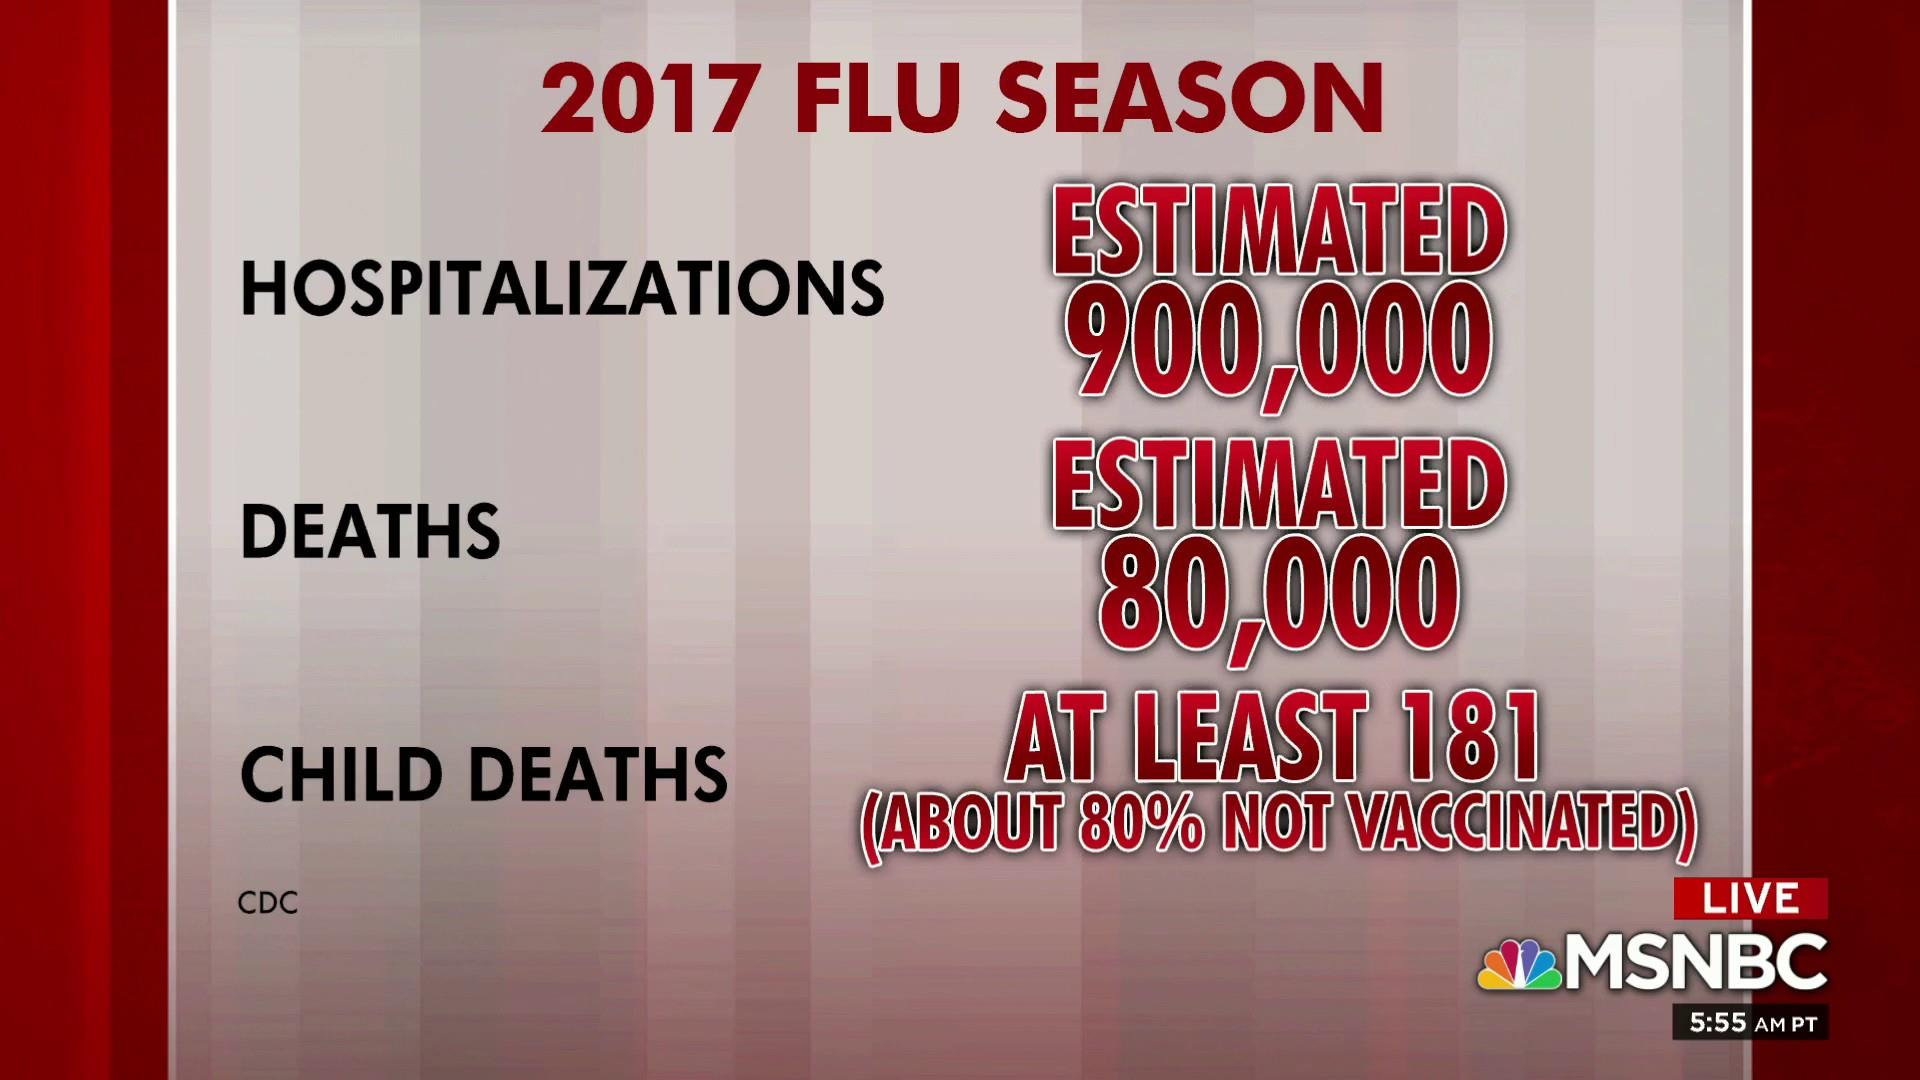 2017 was deadliest flu season in four decades